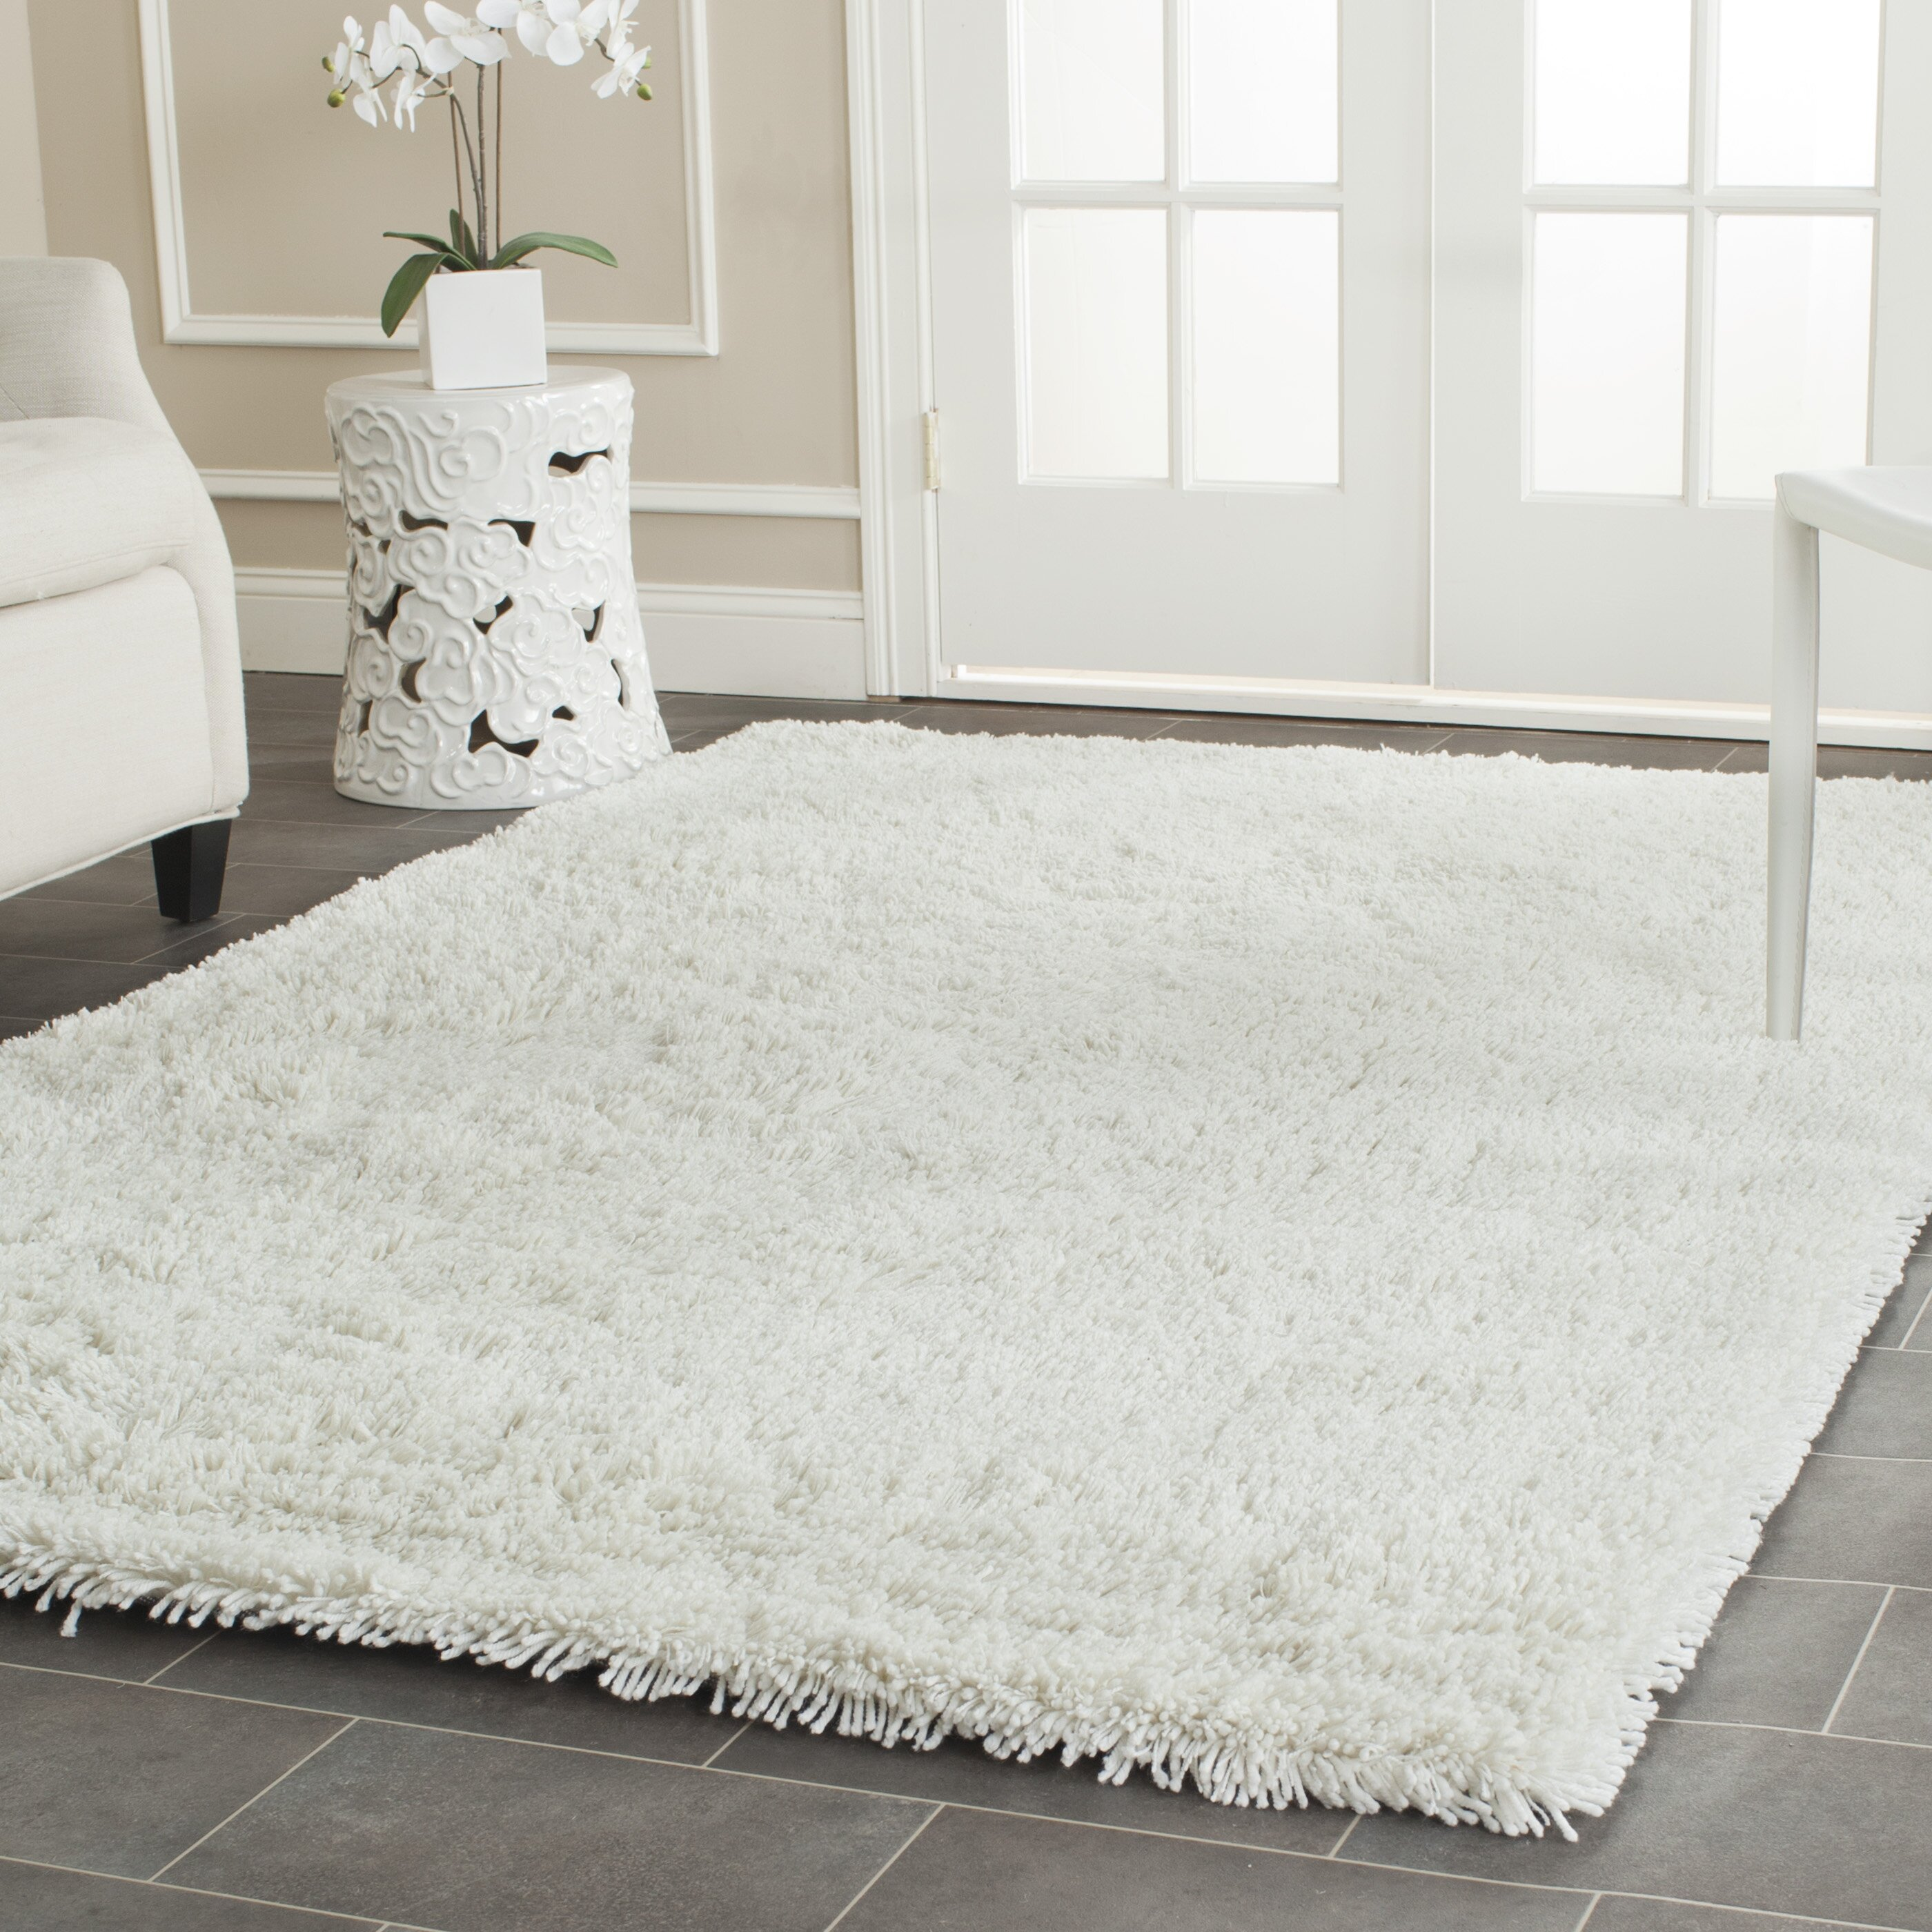 Charlton home pierce white shag area rug reviews wayfair for White area rug